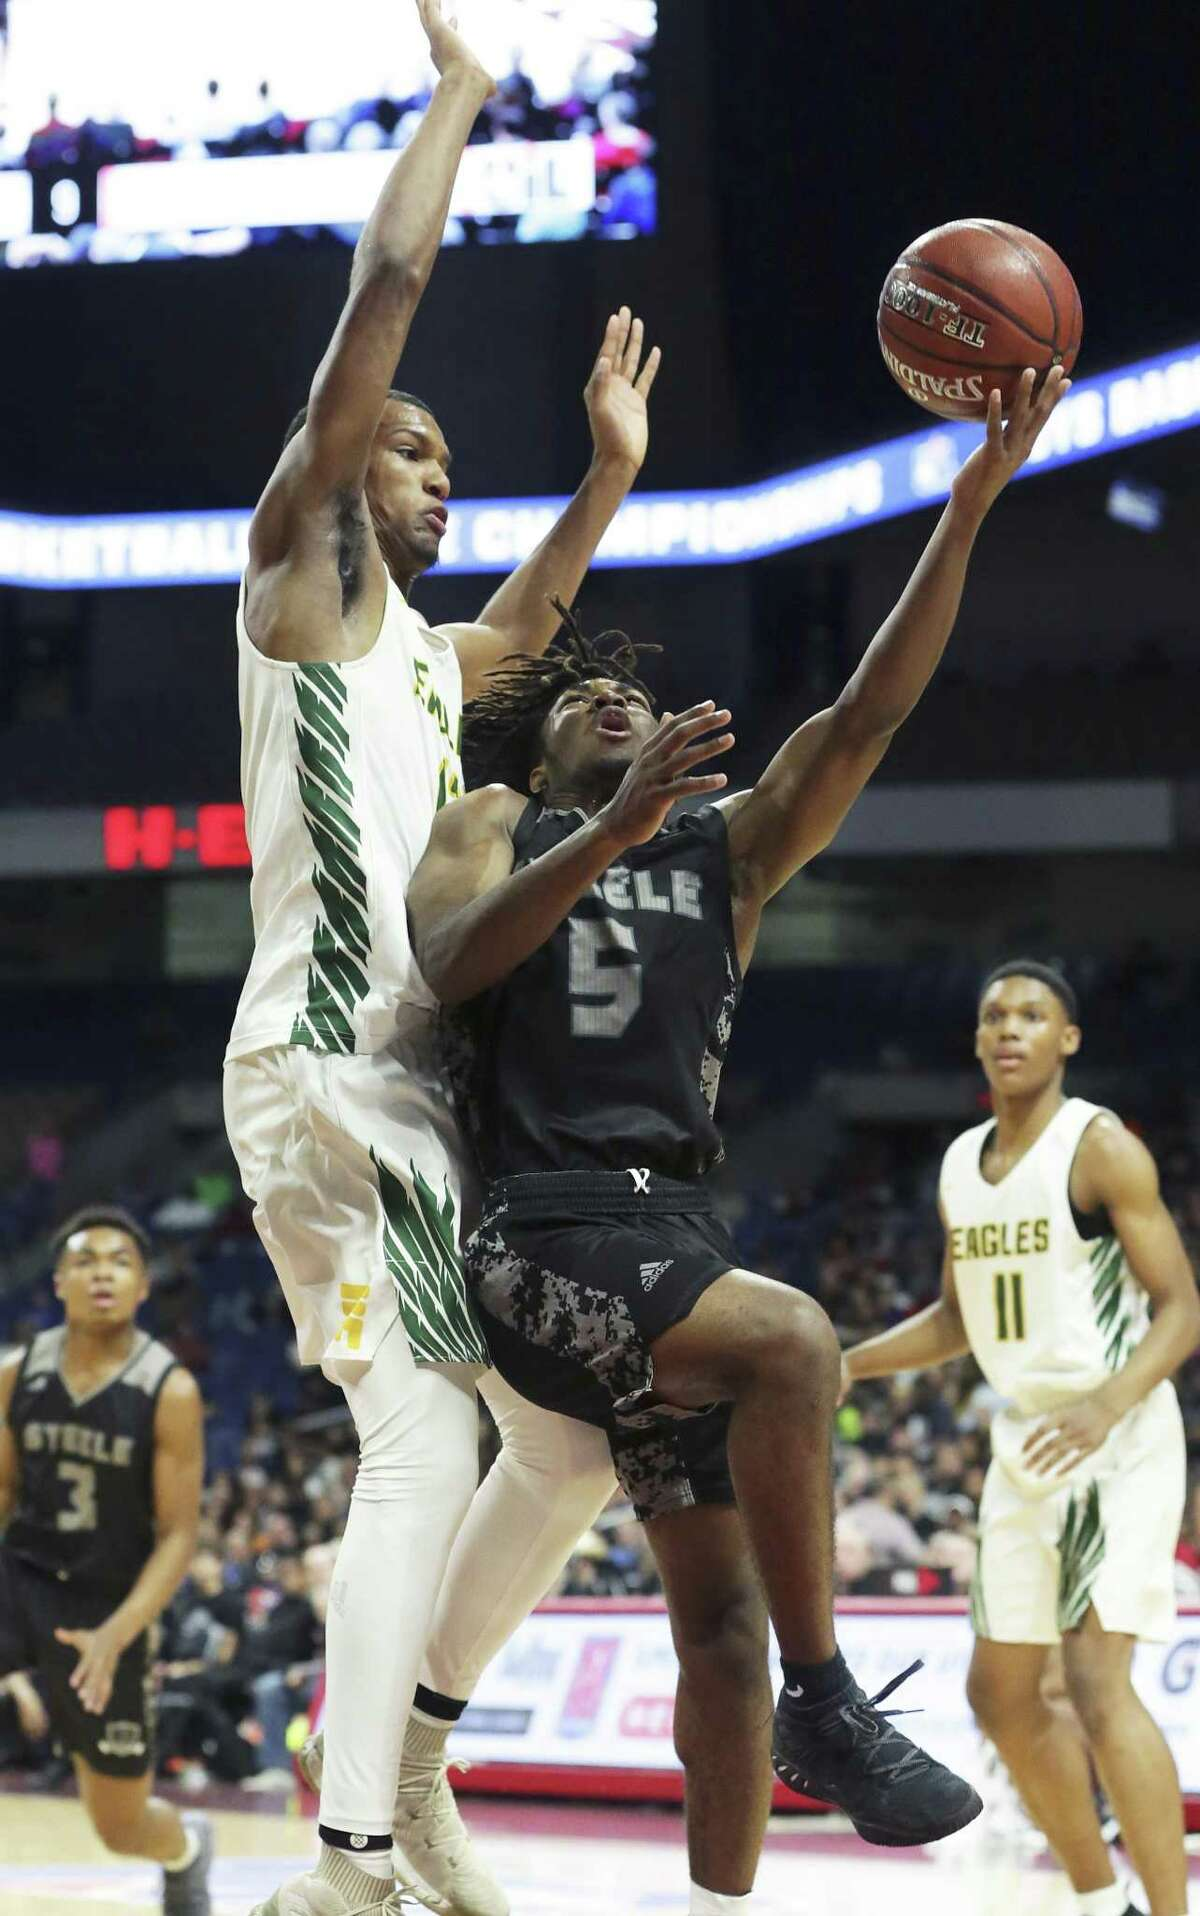 Quincey Sheperd tries a layup against Eagle center Calvin Solomon as Steele plays Klein Forest in the Class 6A boys state semifinal basketball game at the Alamodome on March 8, 2019.